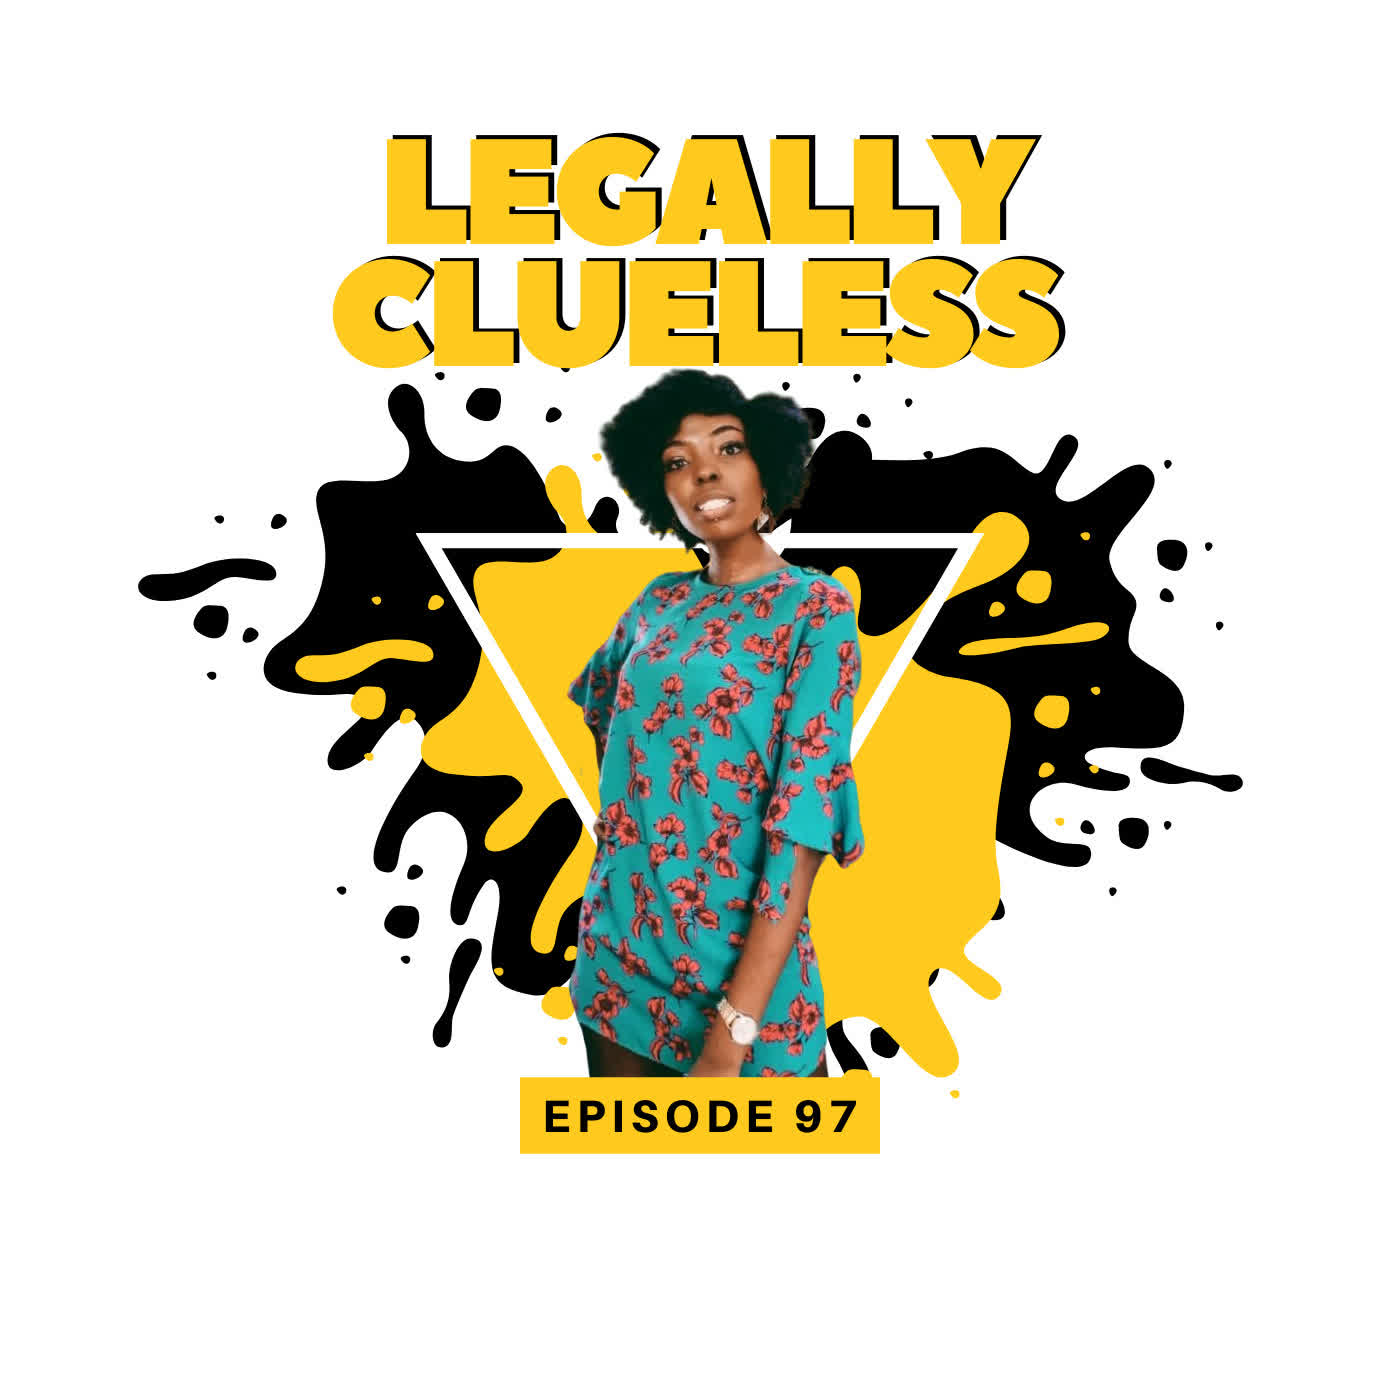 Ep97 - Sketching When I Was 5 Years Old & Starting A New Business After A Failed One